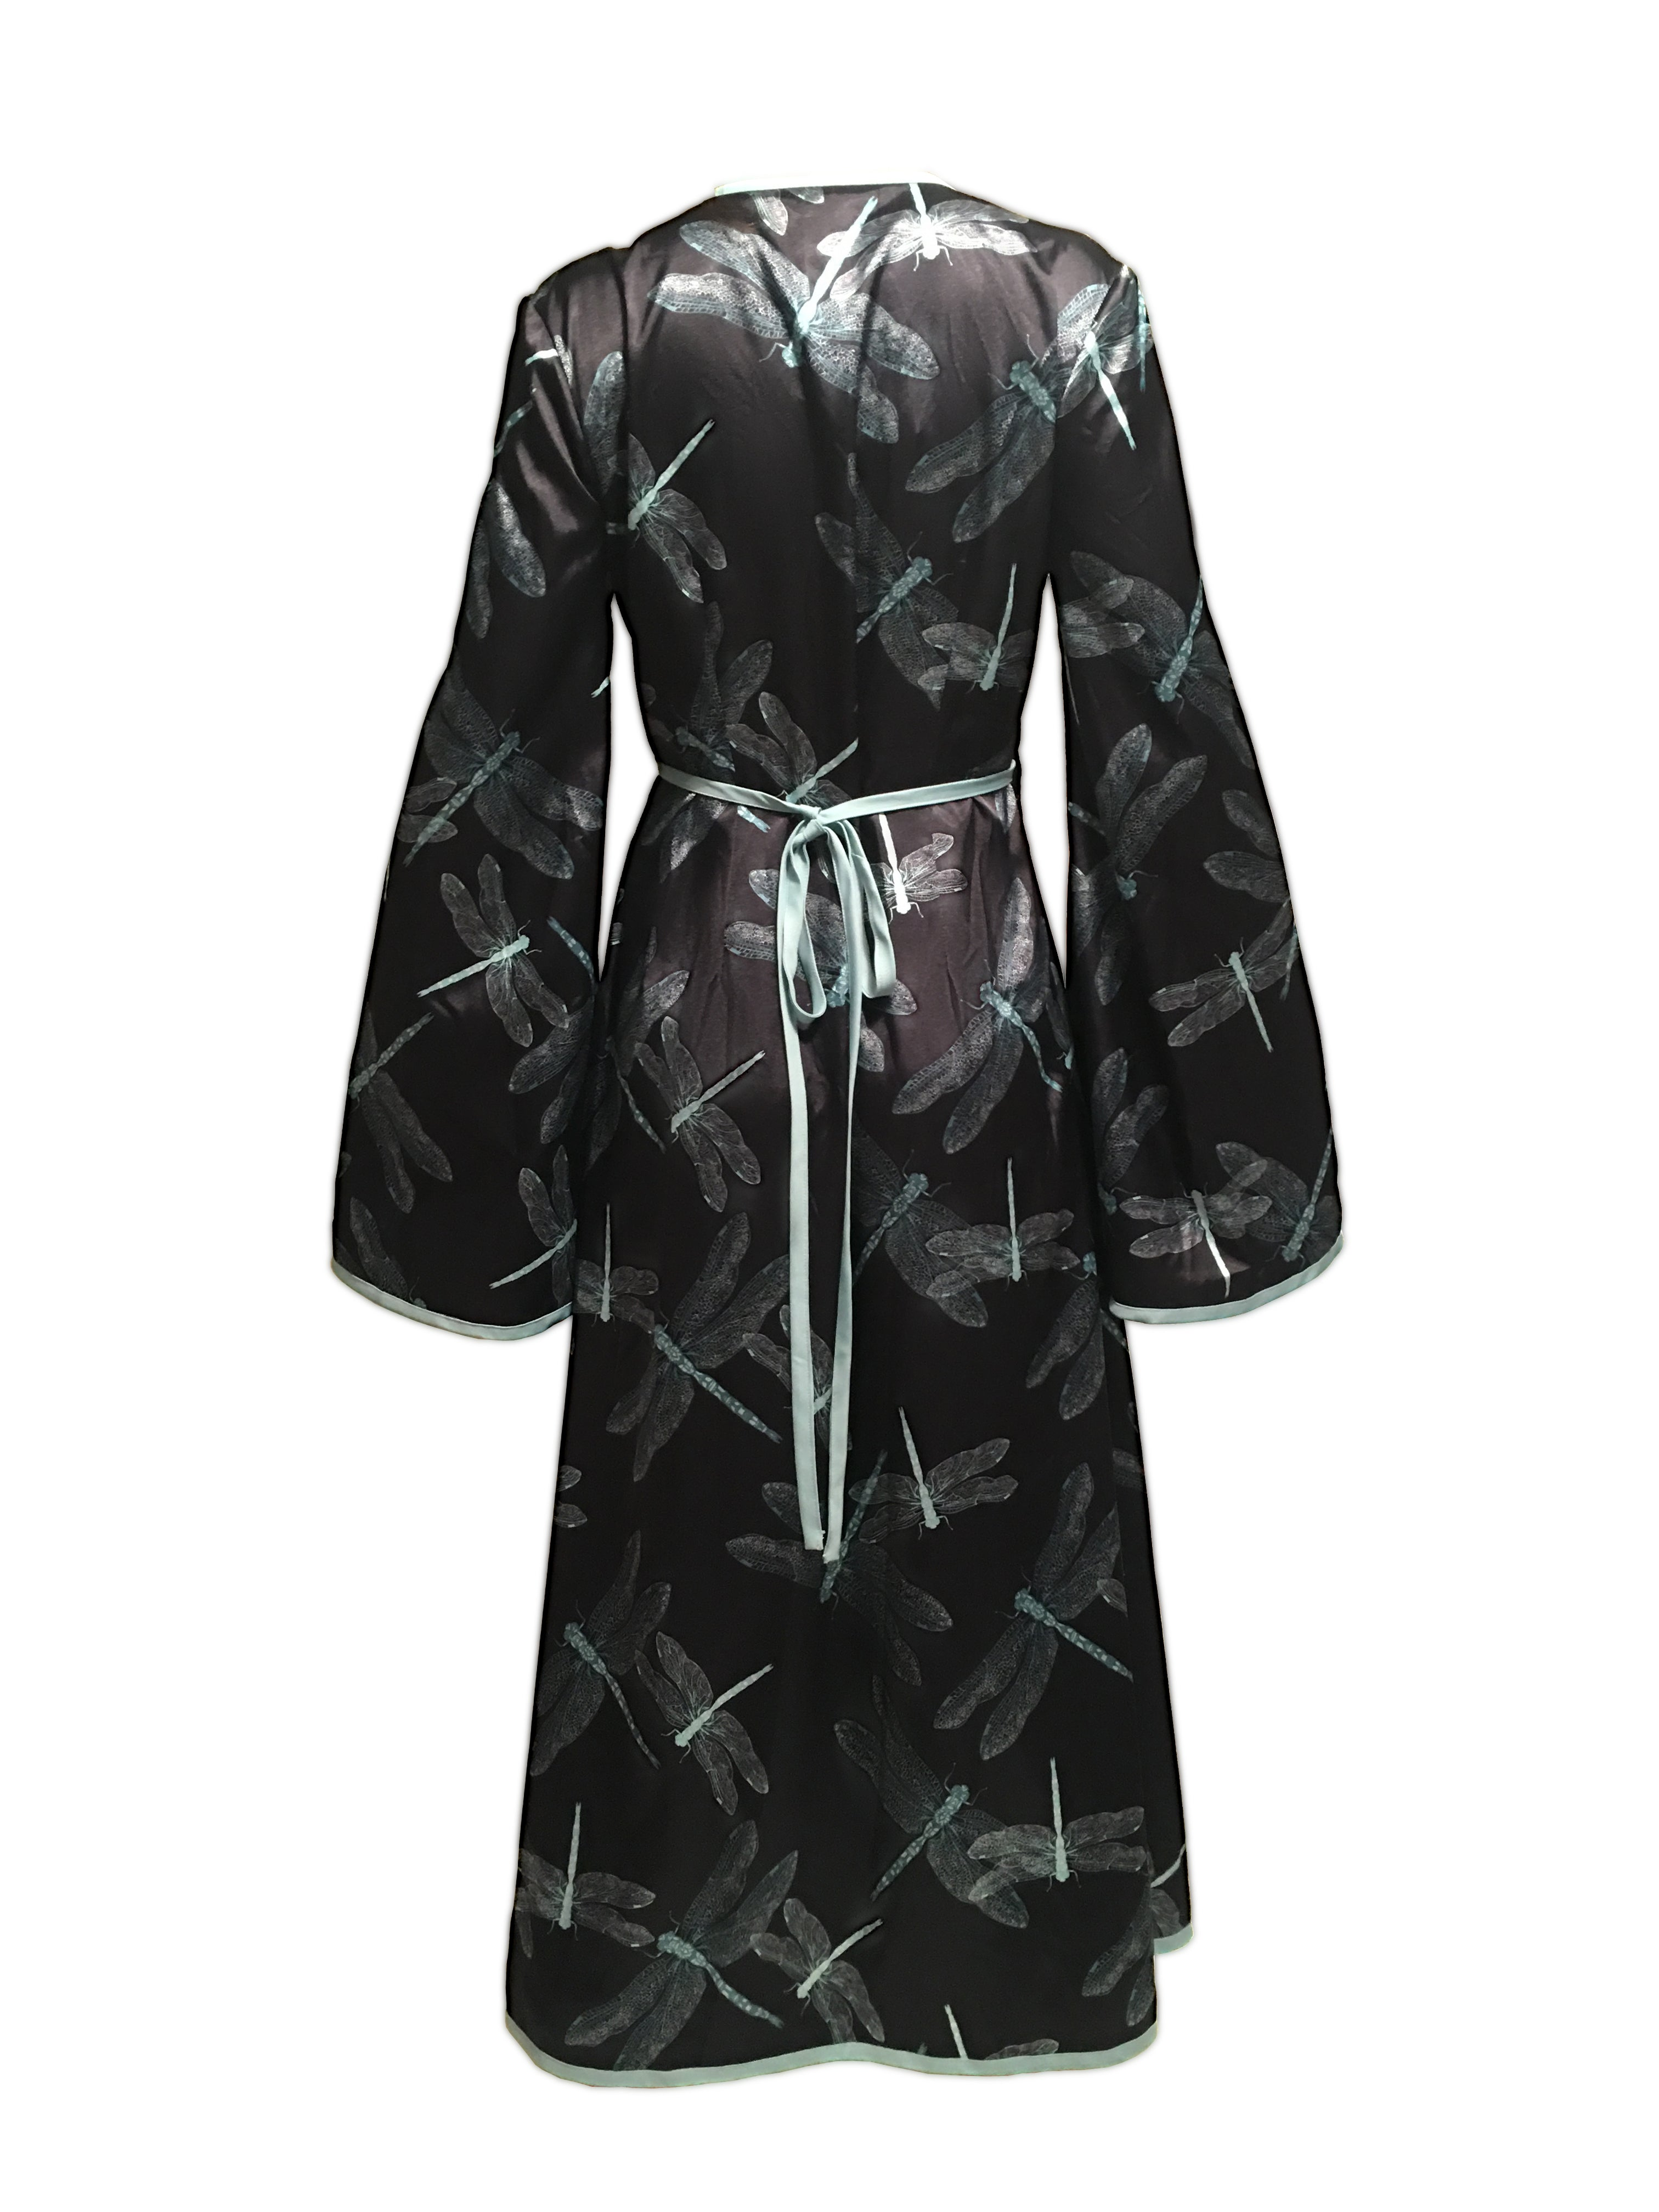 DAMSELFLY WRAP DRESS - BLACK - SAMPLE